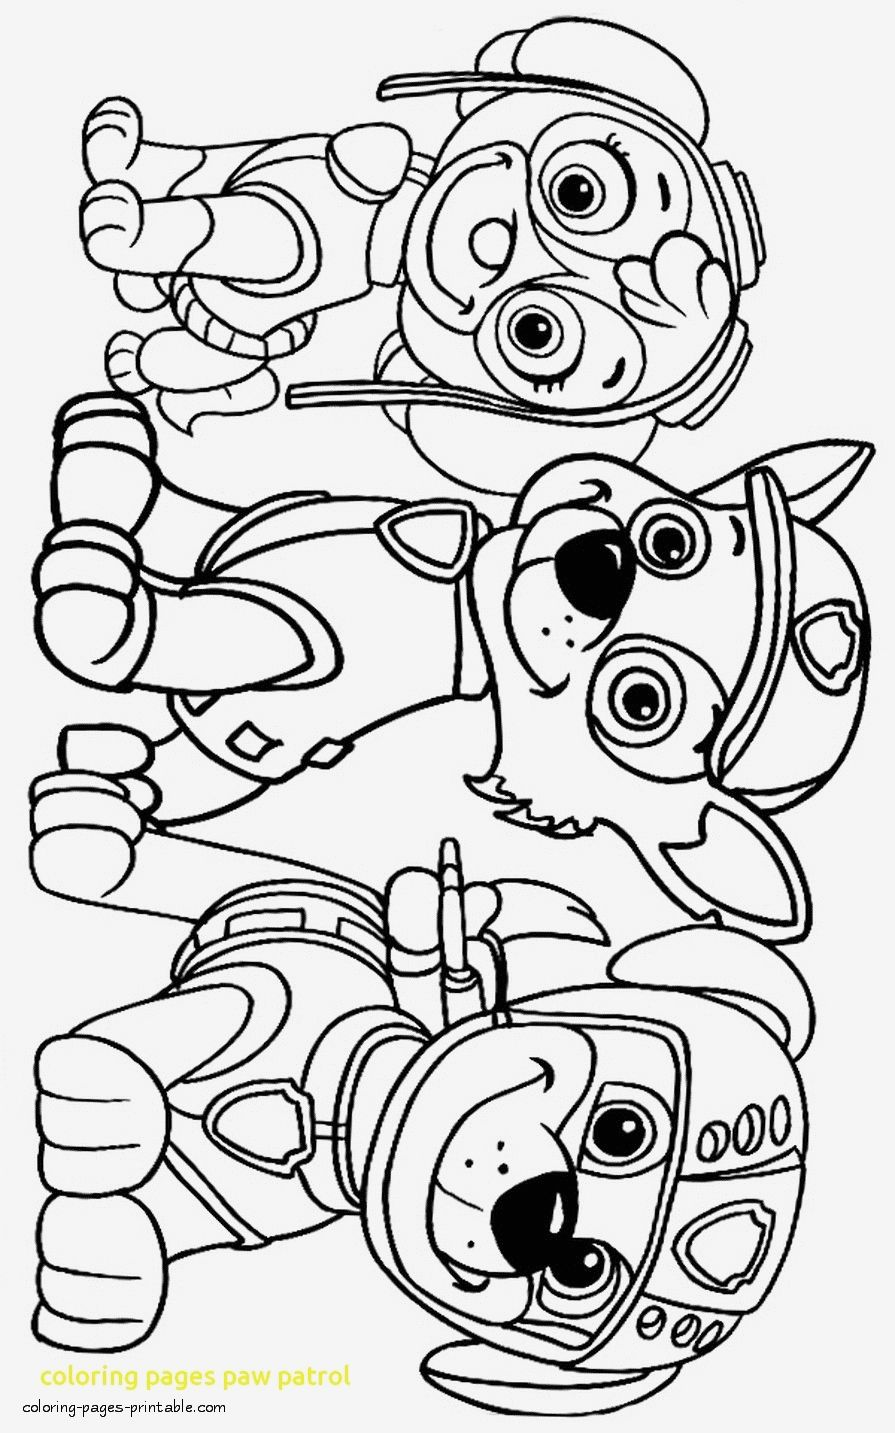 Paw Patrol Coloring Pages To Print Paw Patrol Coloring Pages Paw Patrol Coloring Paw Patrol Printables